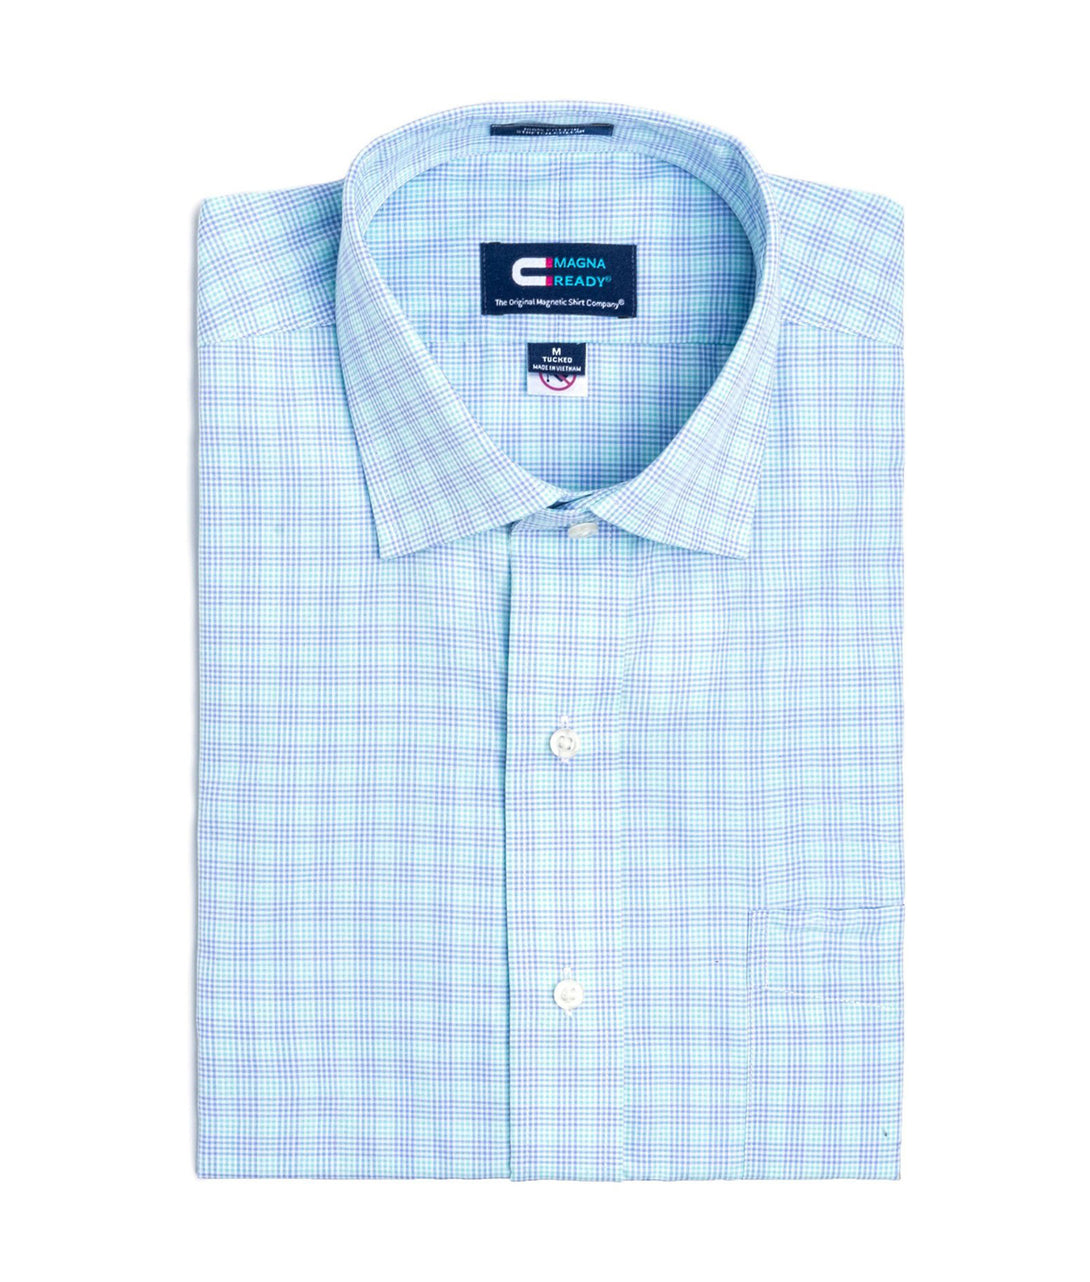 Blue and Teal Check Short Sleeve Shirt with Magnetic Closures | JUNIPERunltd